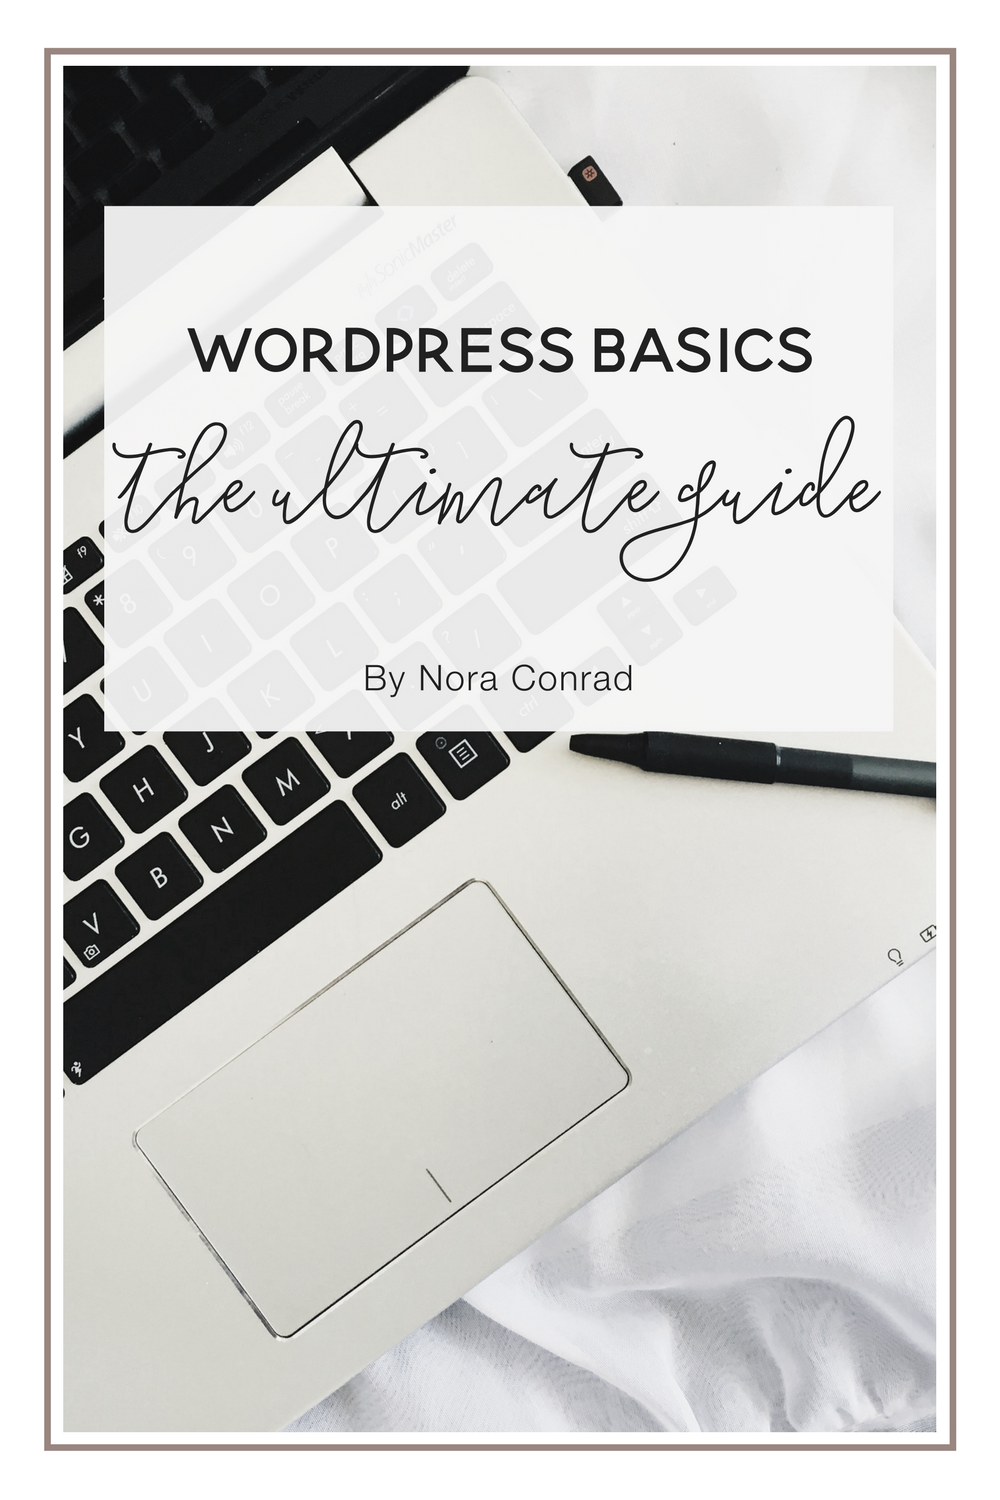 How to get started on WordPress. A full step-by-step guide for starting a WordPress blog. Everything you need to know to get started.